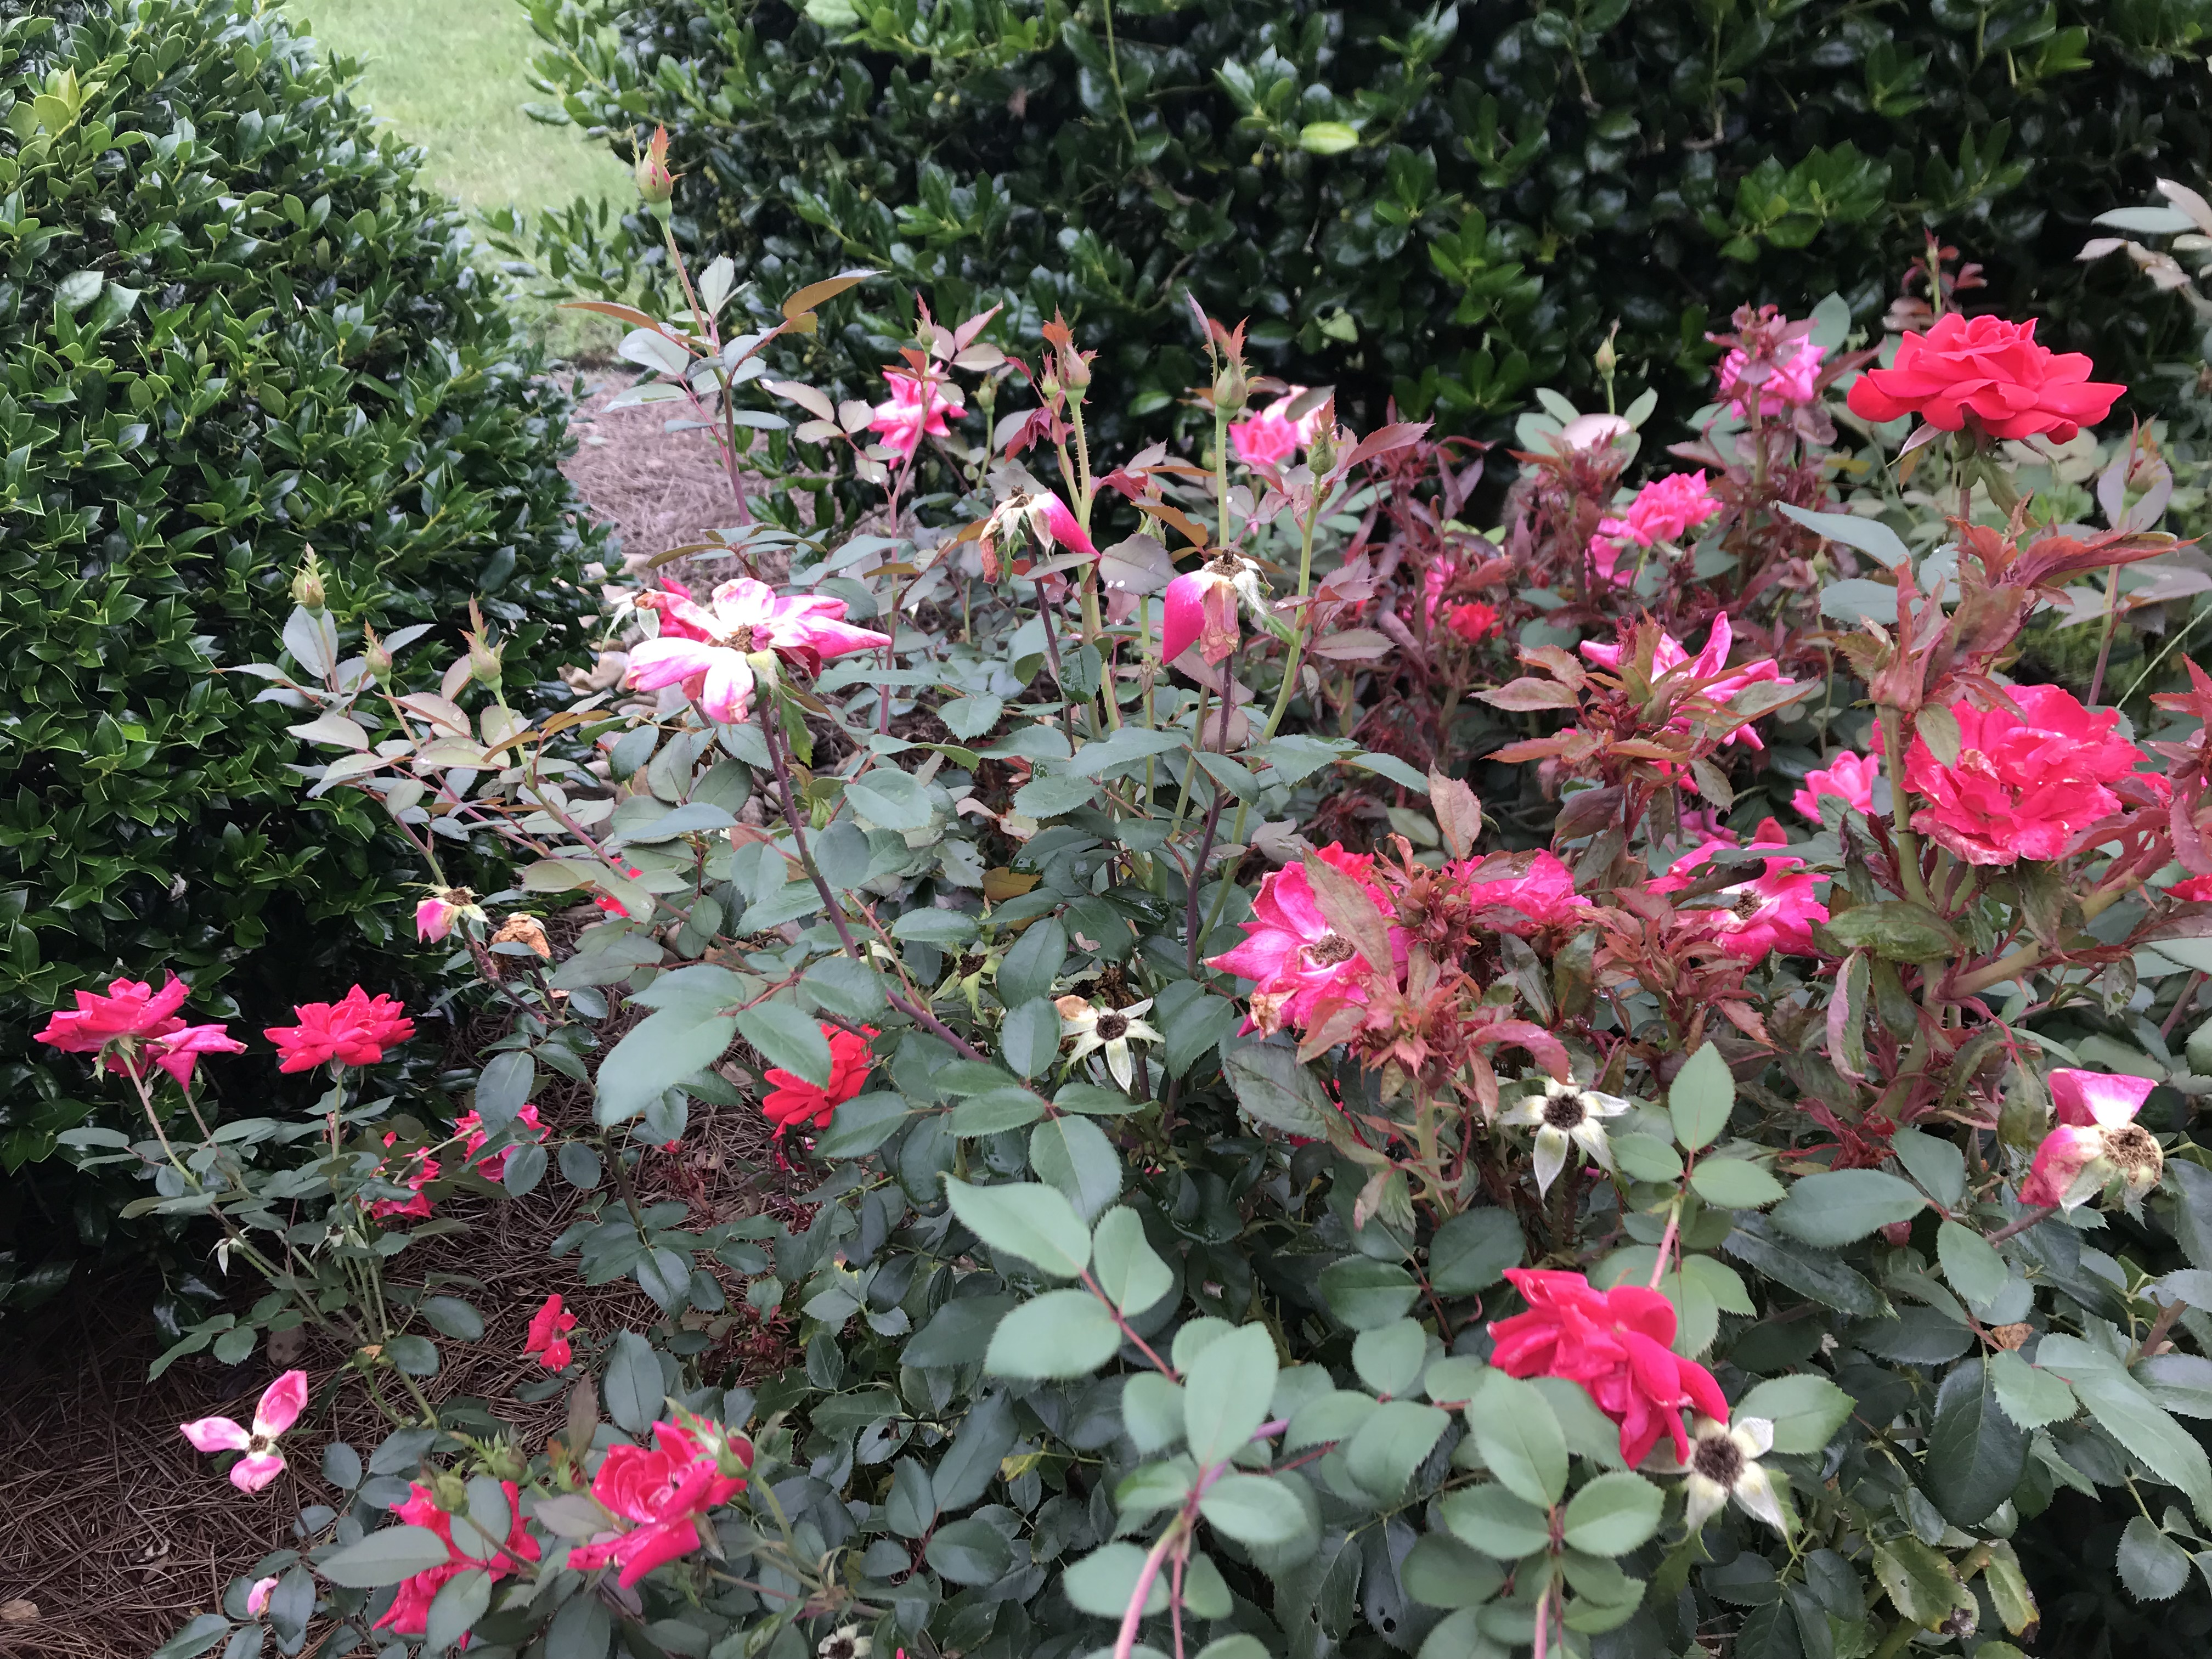 What S Happening To My Knockout Roses Breedlove Farm S Estate S Land Julie Breedlove Statesville Piedmont Nc 704 528 5575